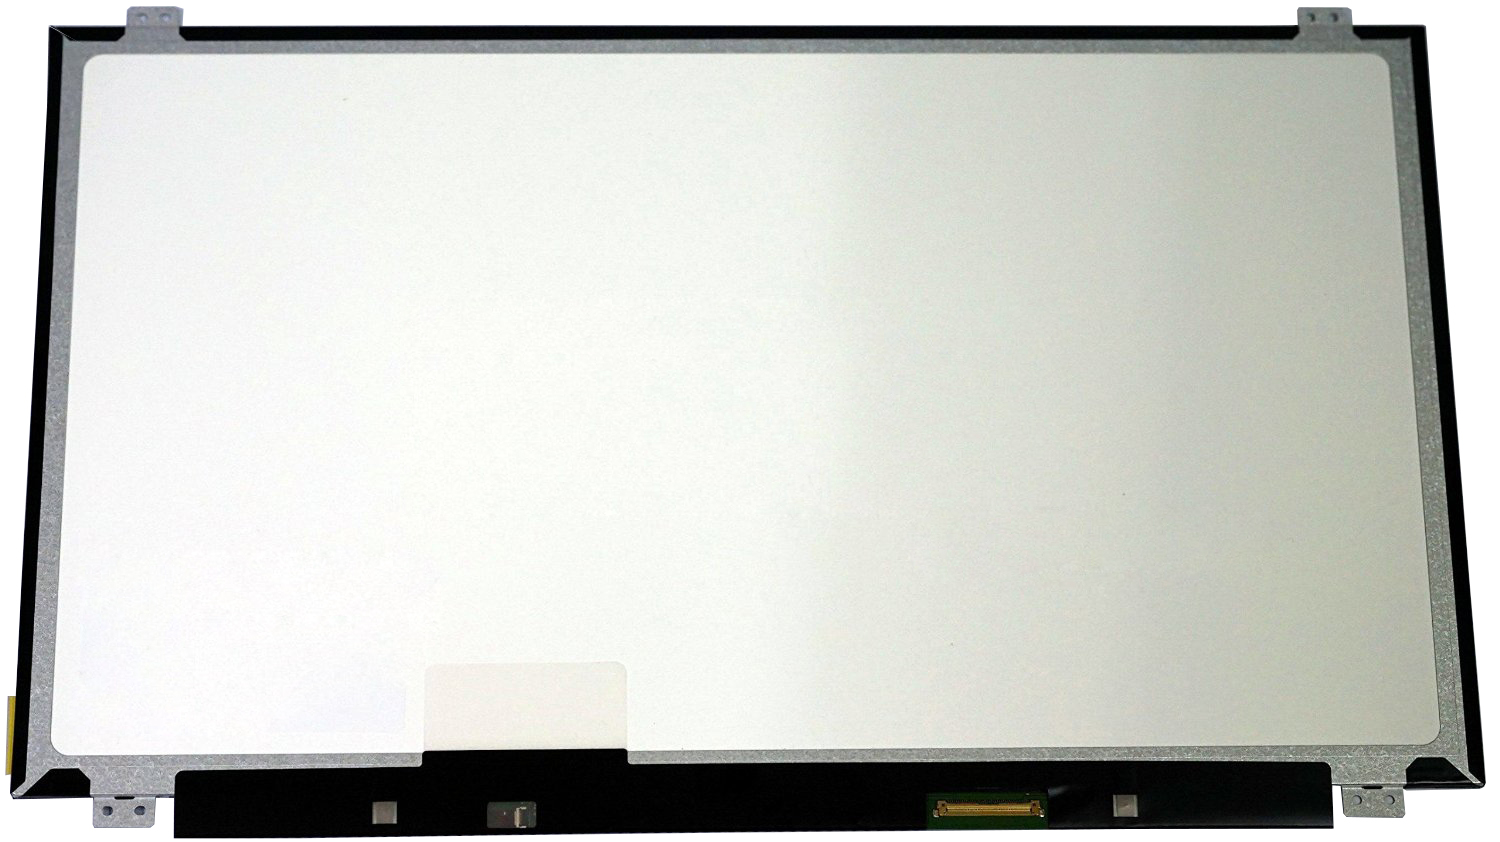 QuYing Laptop LCD Screen for Acer ASPIRE V5-572P V5-573G V5-571PG V7-581 V5-552P V5-573P E5-532T SERIES(15.6 1366x768 30pin) шрамы 3d blu ray